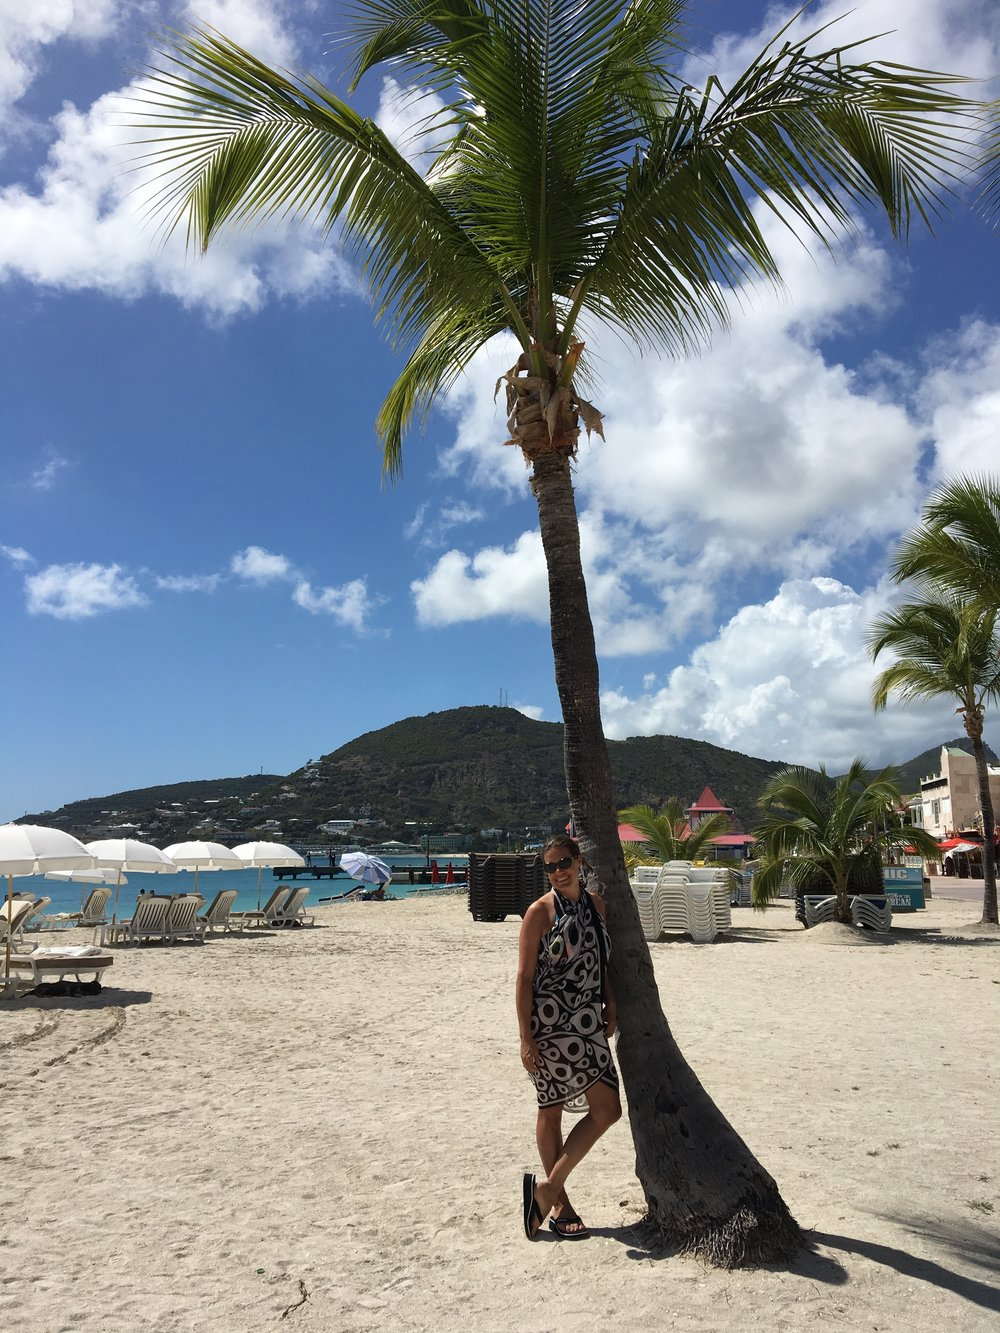 Palm Tree on the Beach - St. Martin - 55 by 55 Travel